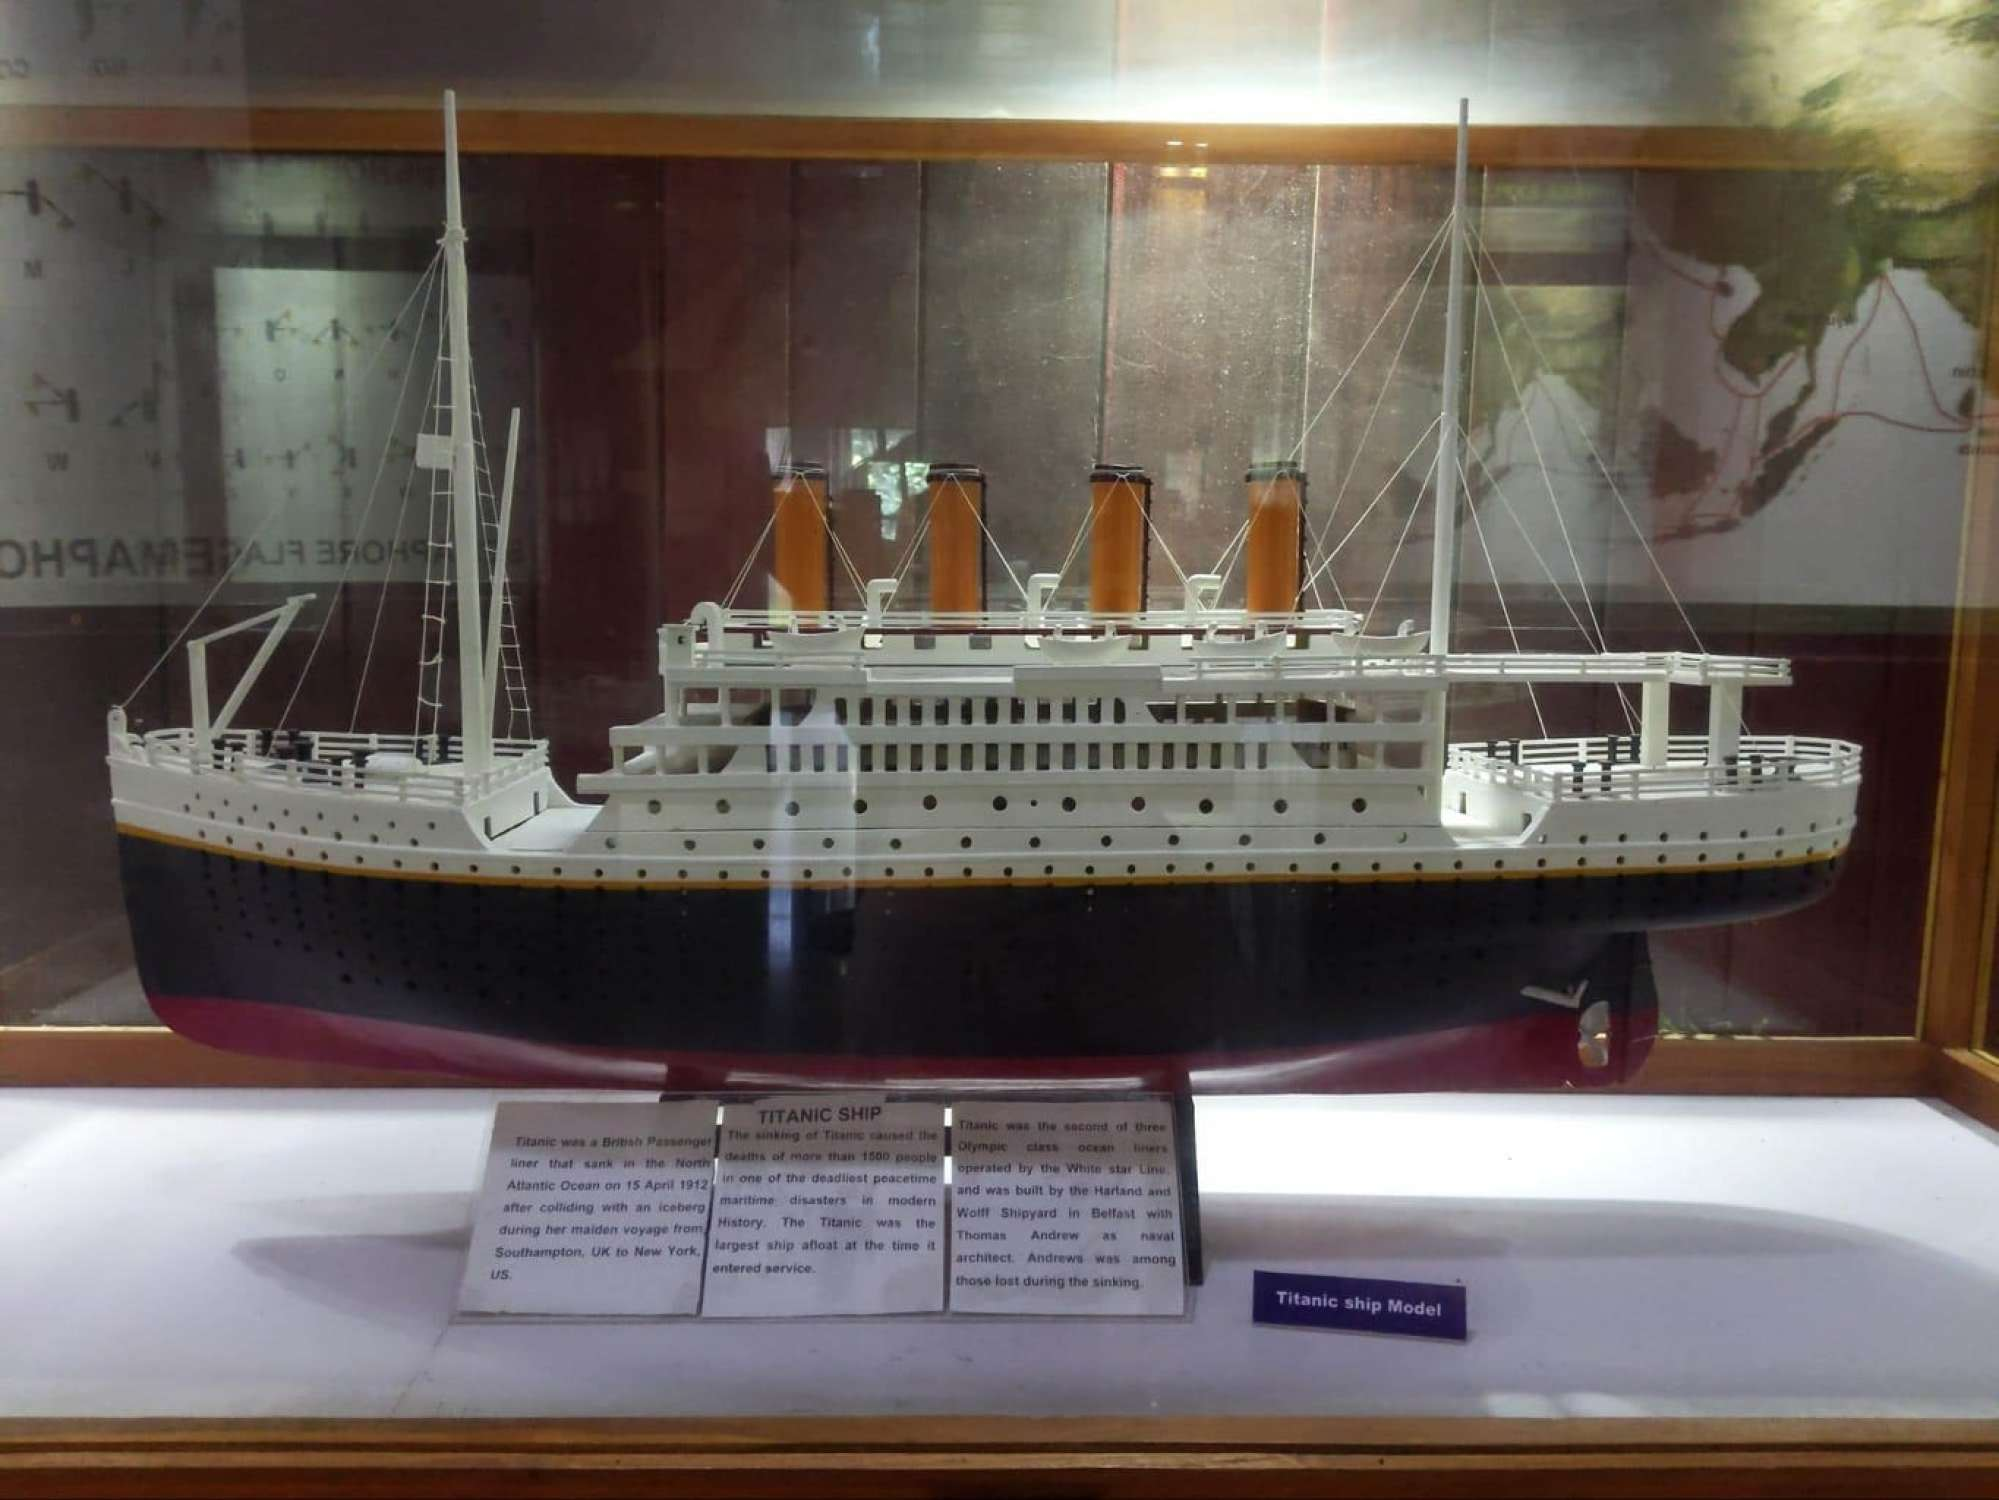 Heritage Maritime Museum model of the Titanic